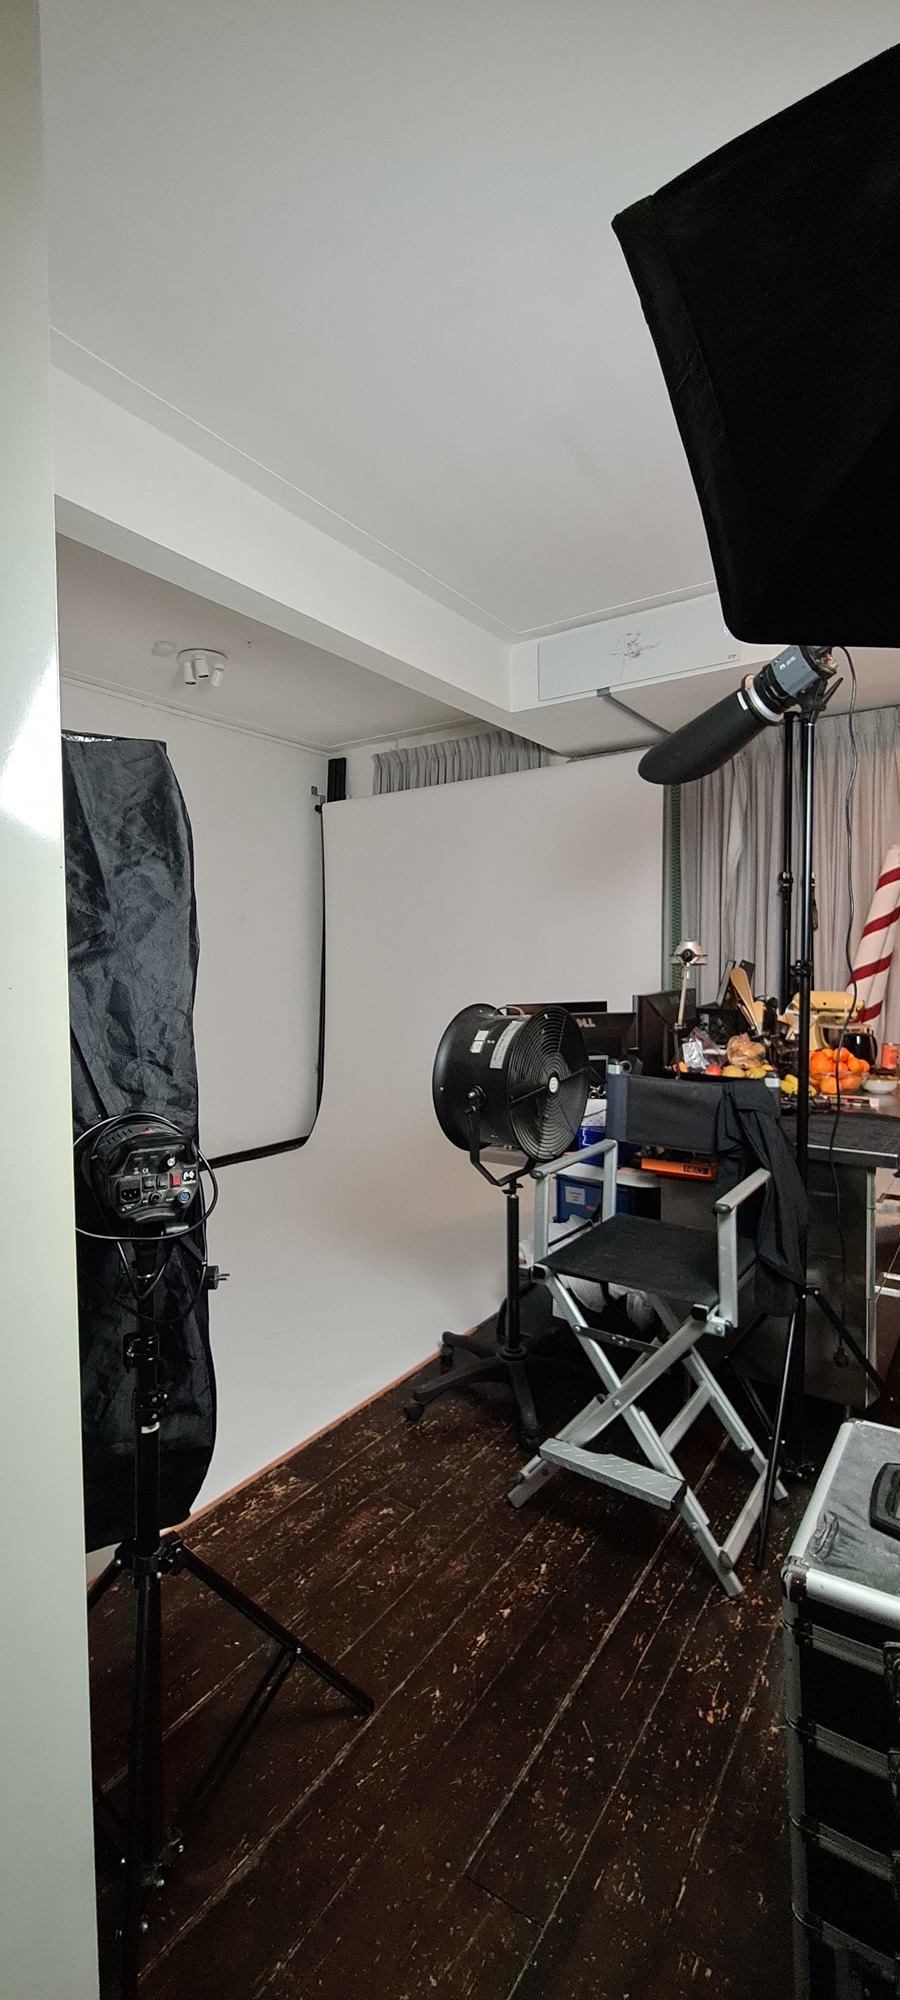 Our new studio / Photography by Sybarite / Uploaded 5th September 2021 @ 10:46 AM